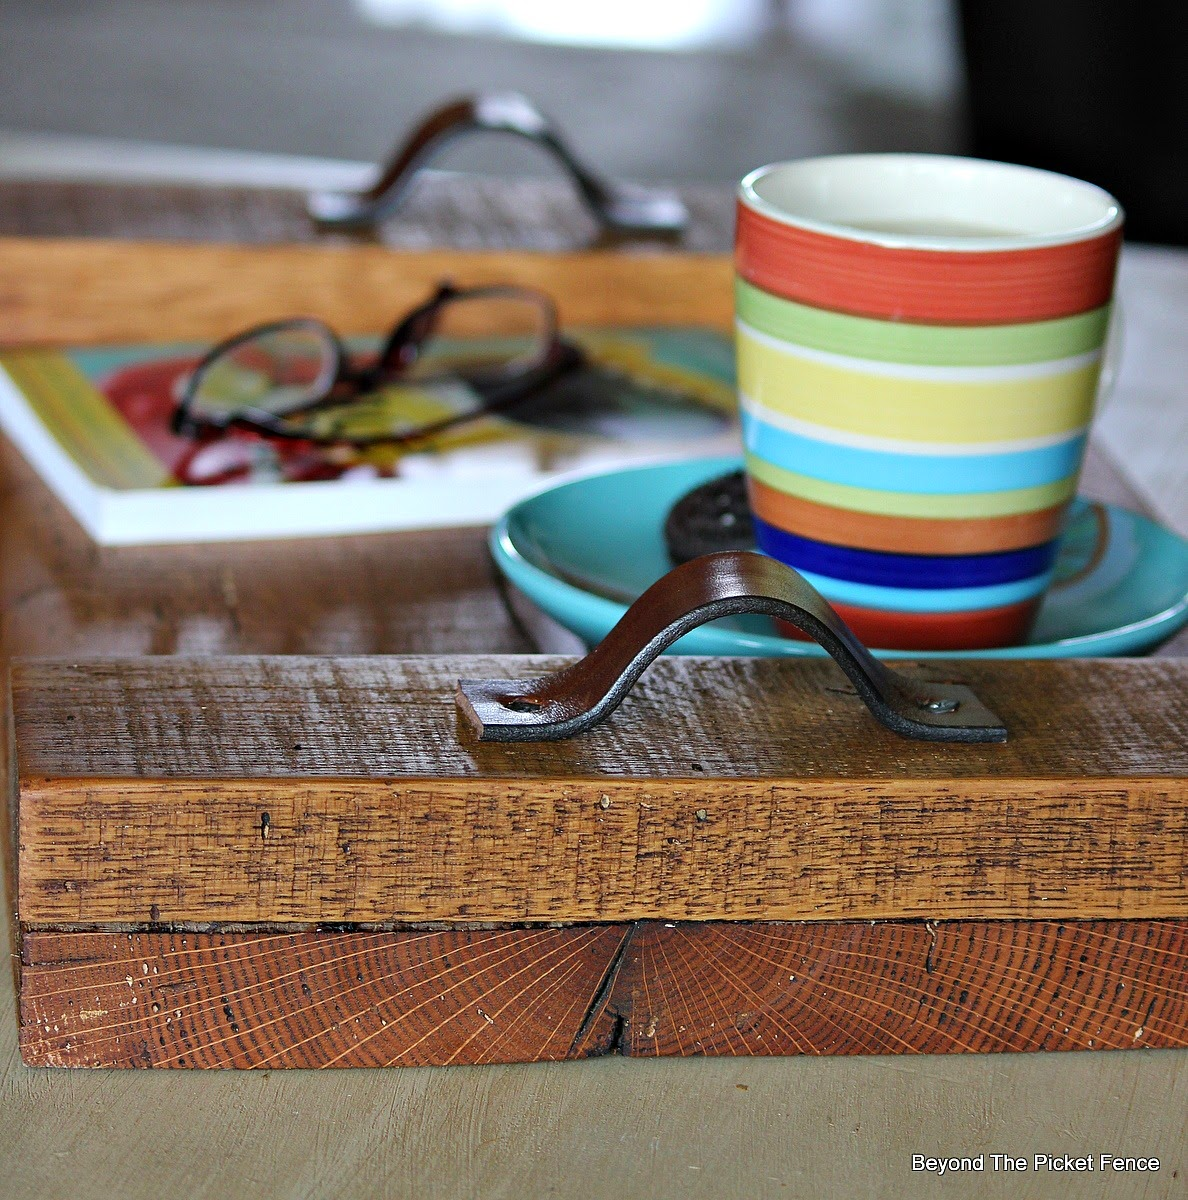 Reclaimed Wood Tray http://bec4-beyondthepicketfence.blogspot.com/2014/08/reclaimed-oak-cow-urine-serving-tray.html